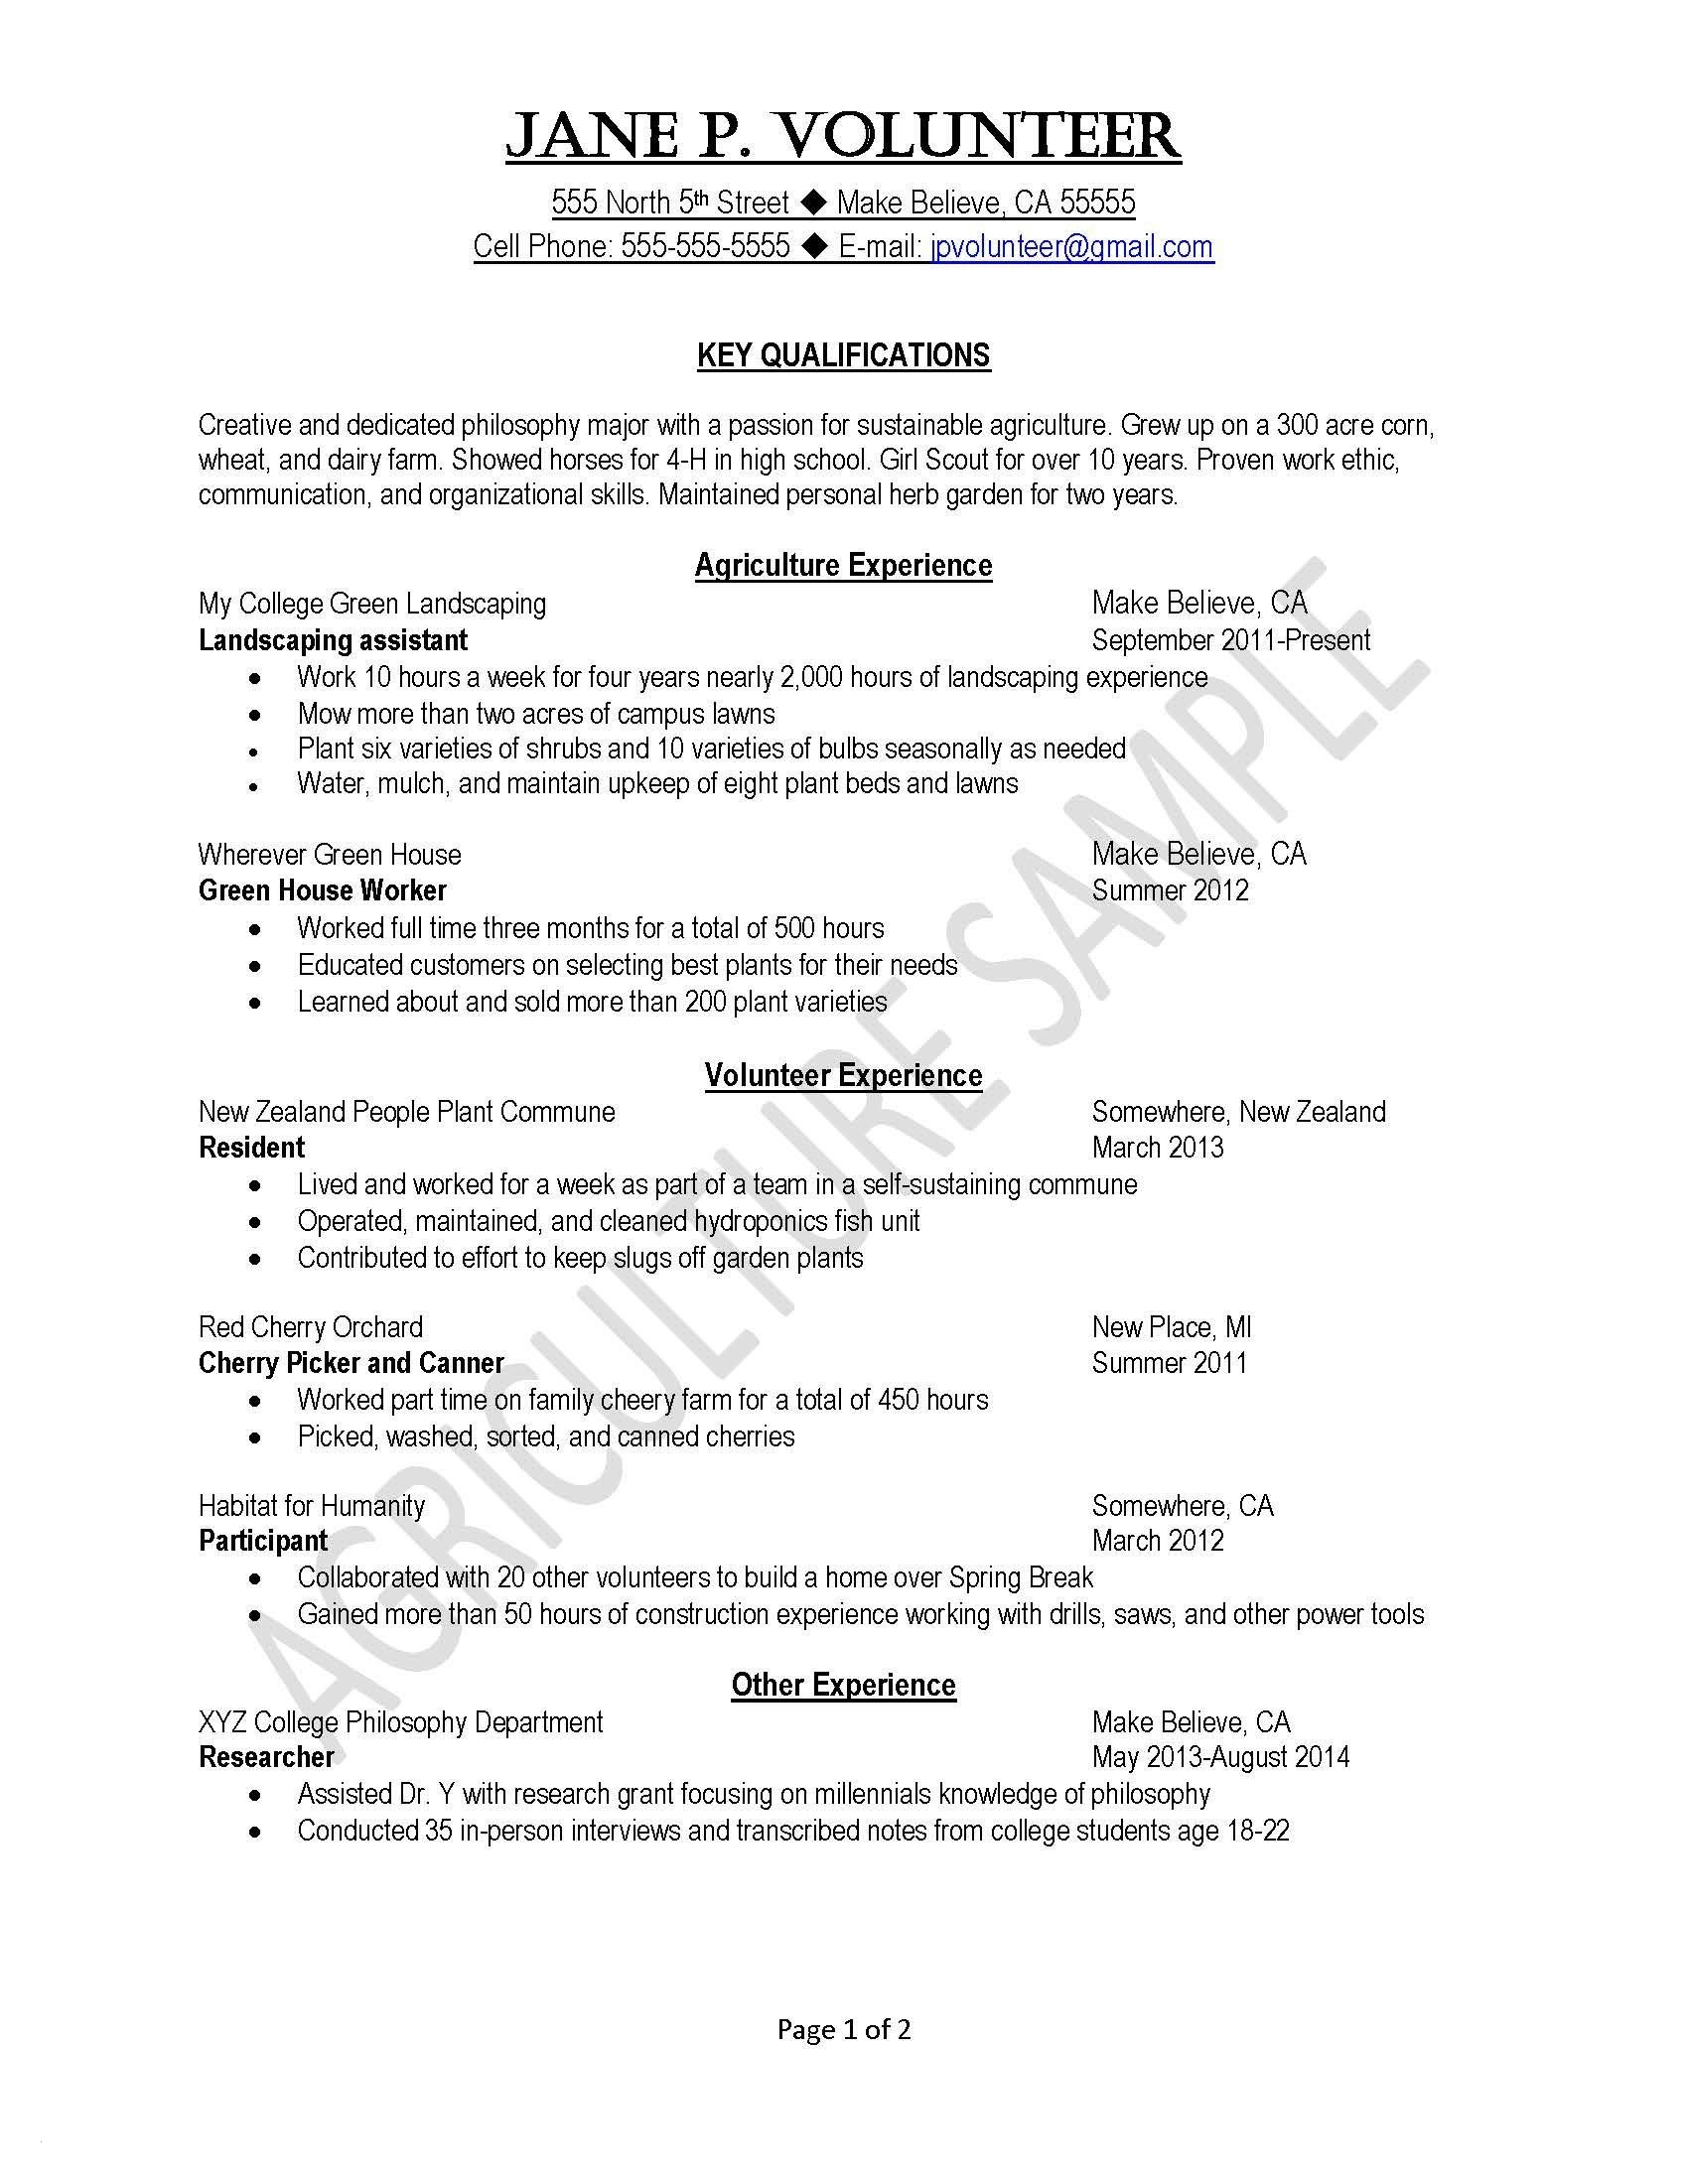 agriculture resume Collection-Resume Templates for College Applications Awesome Awesome Sample College Application Resume Lovely Painter Resume 0d 1-p